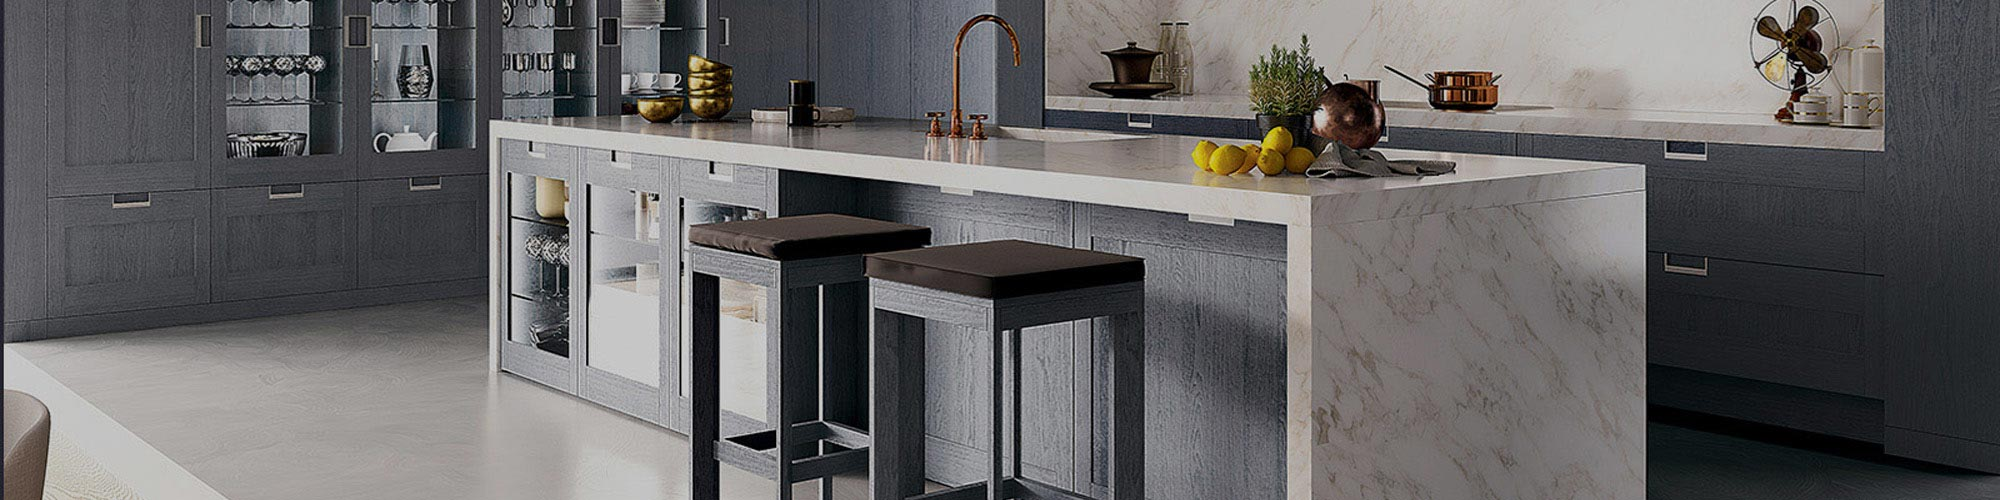 Worktops By FCI London